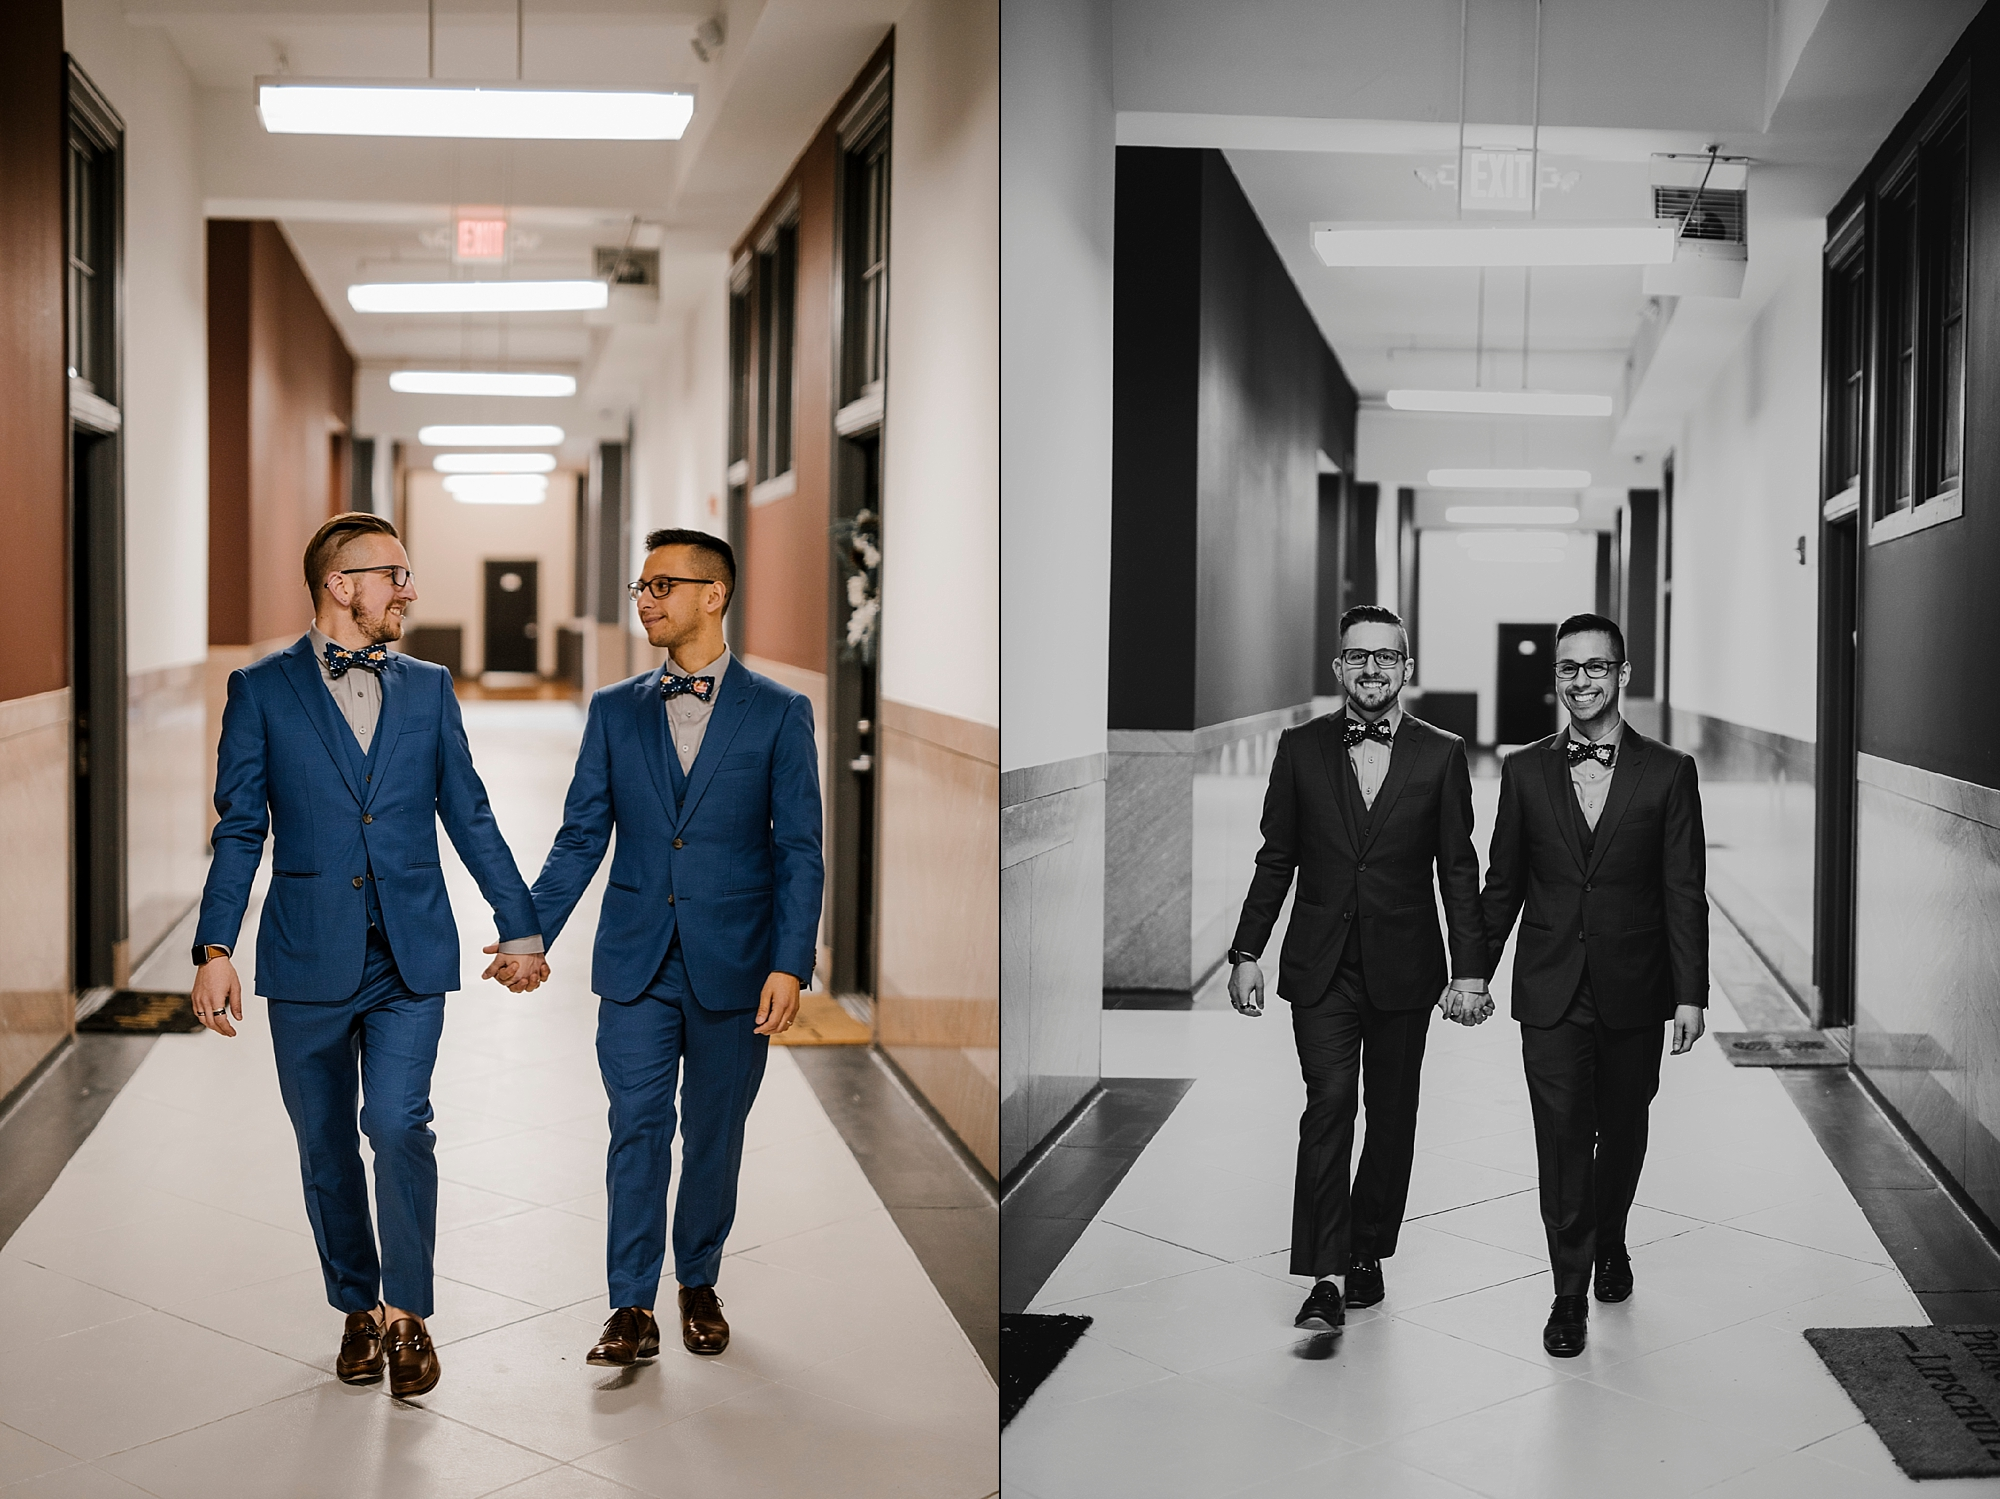 Joe_Mac_Creative_Philadelphia_Philly_LGBT_Gay_Engagement_Wedding_Photography__0102.jpg